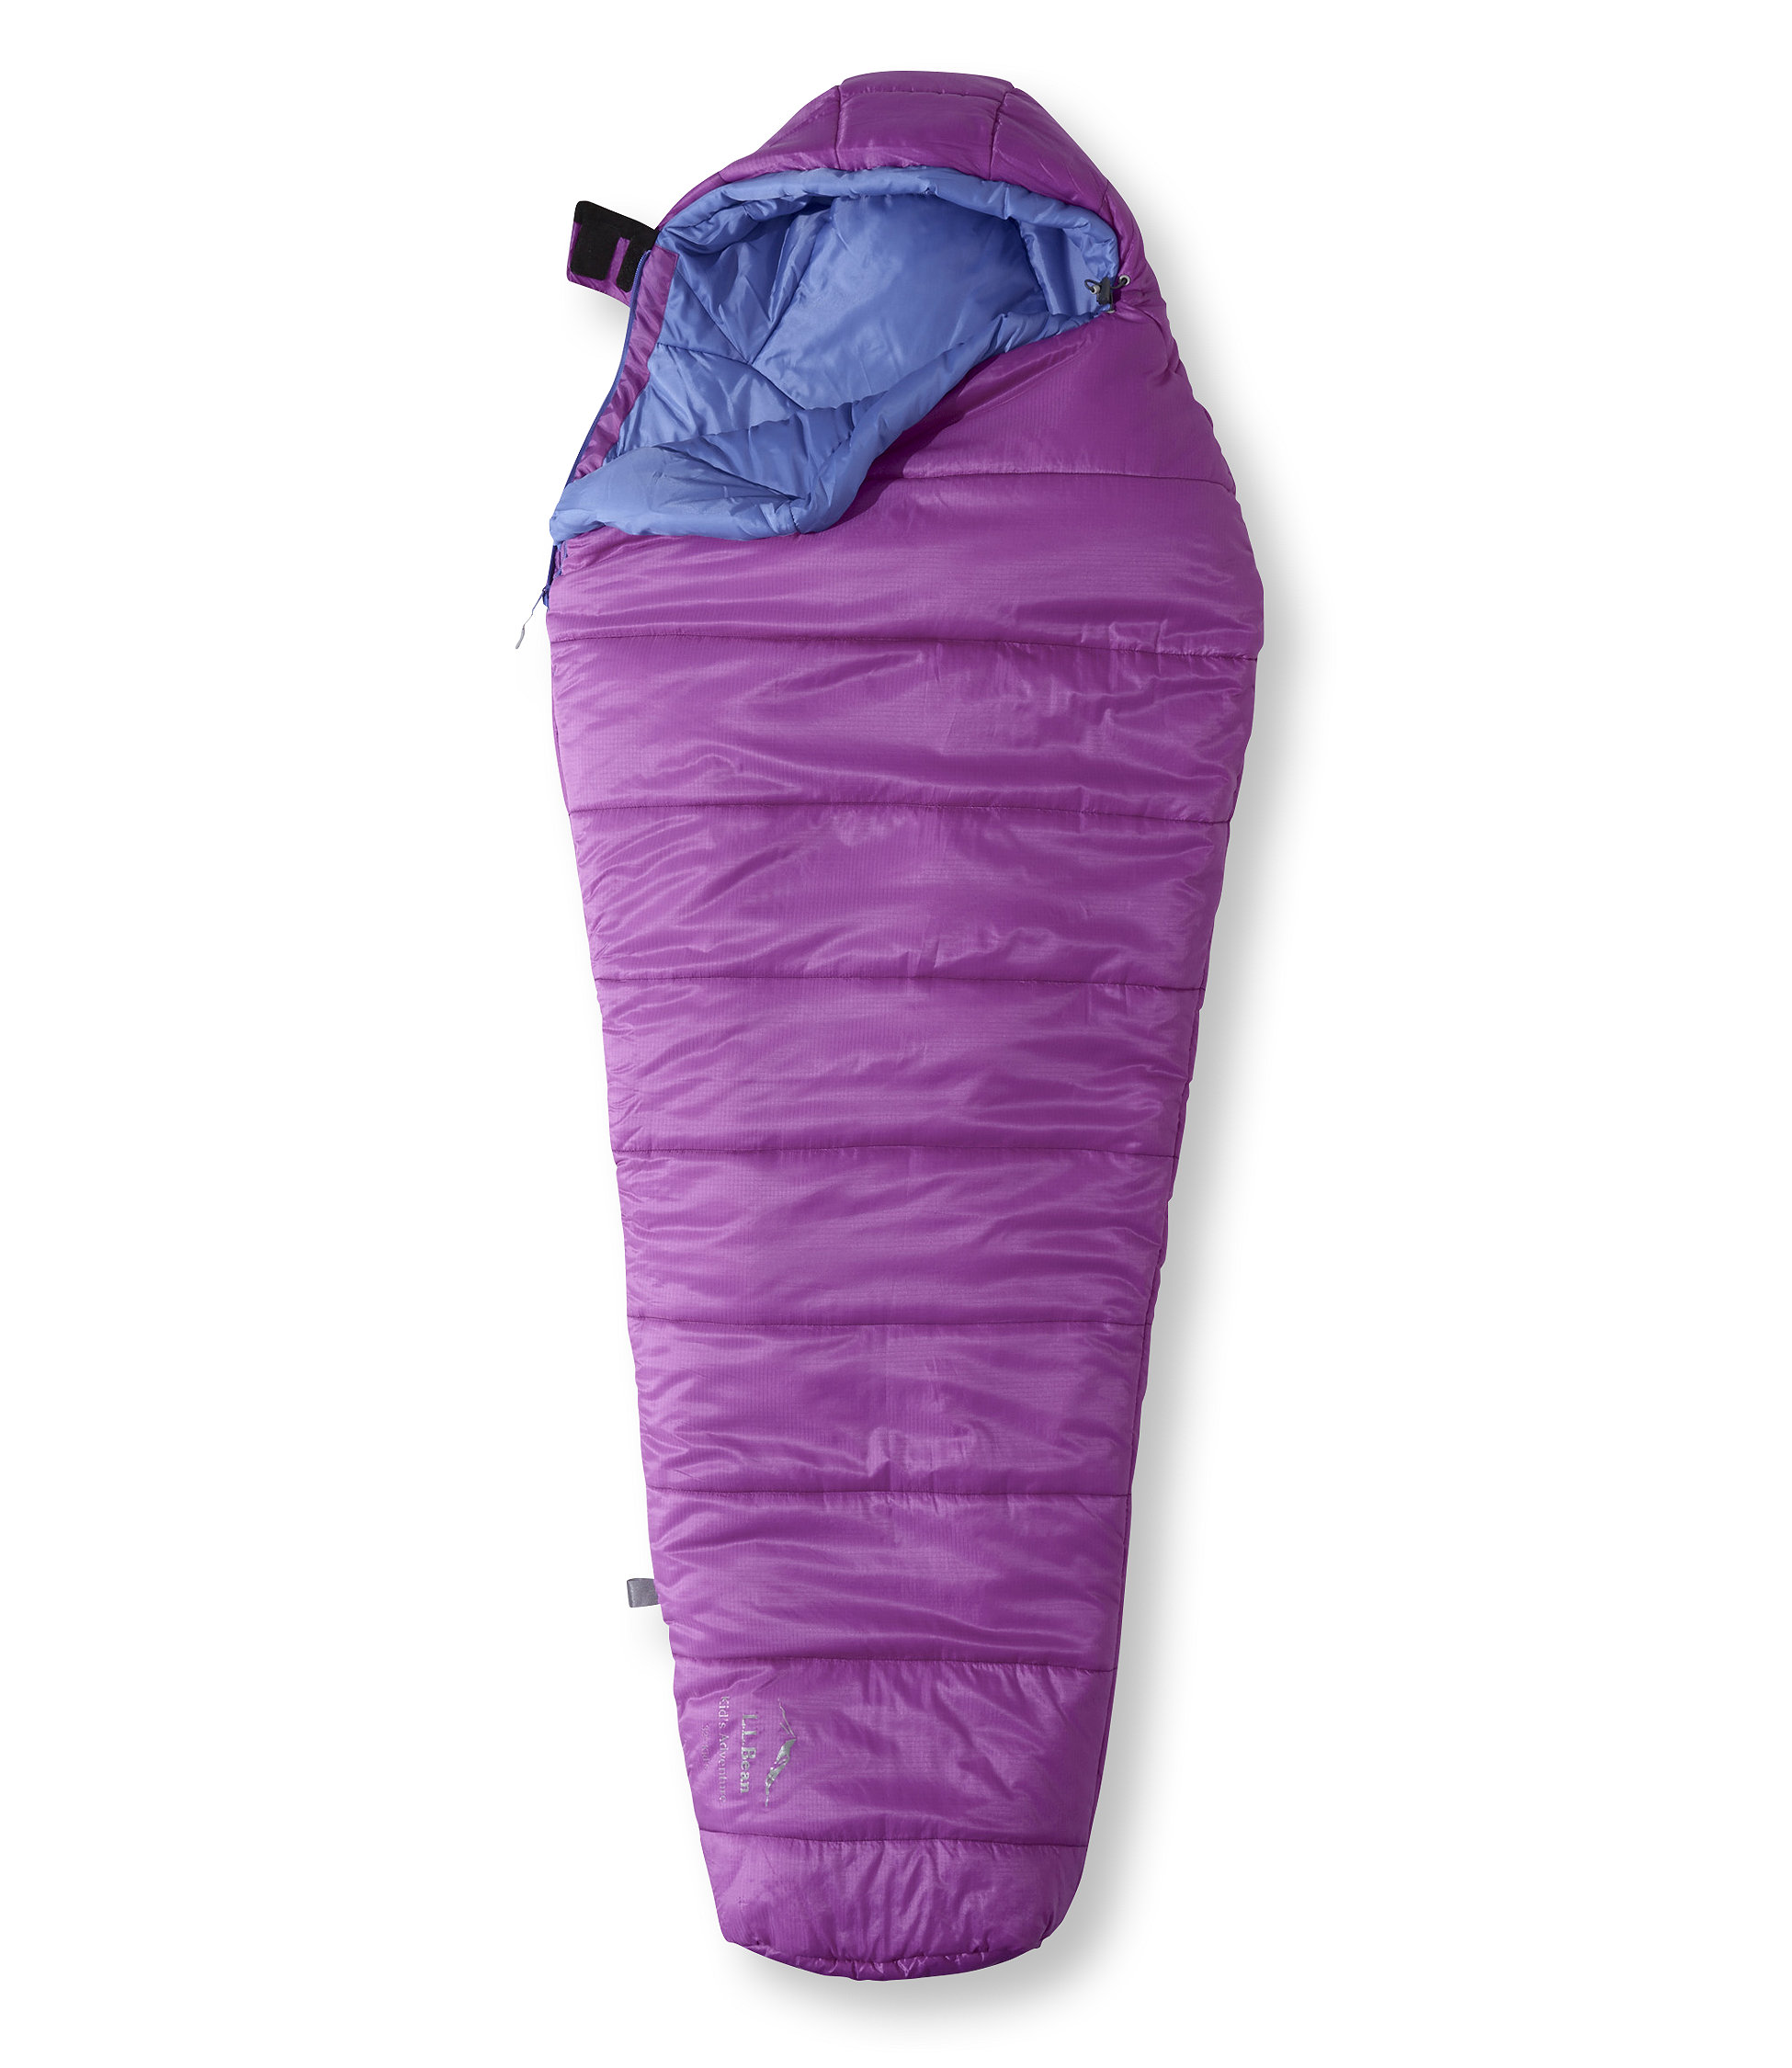 L.L.Bean Adventure Sleeping Bag, 32